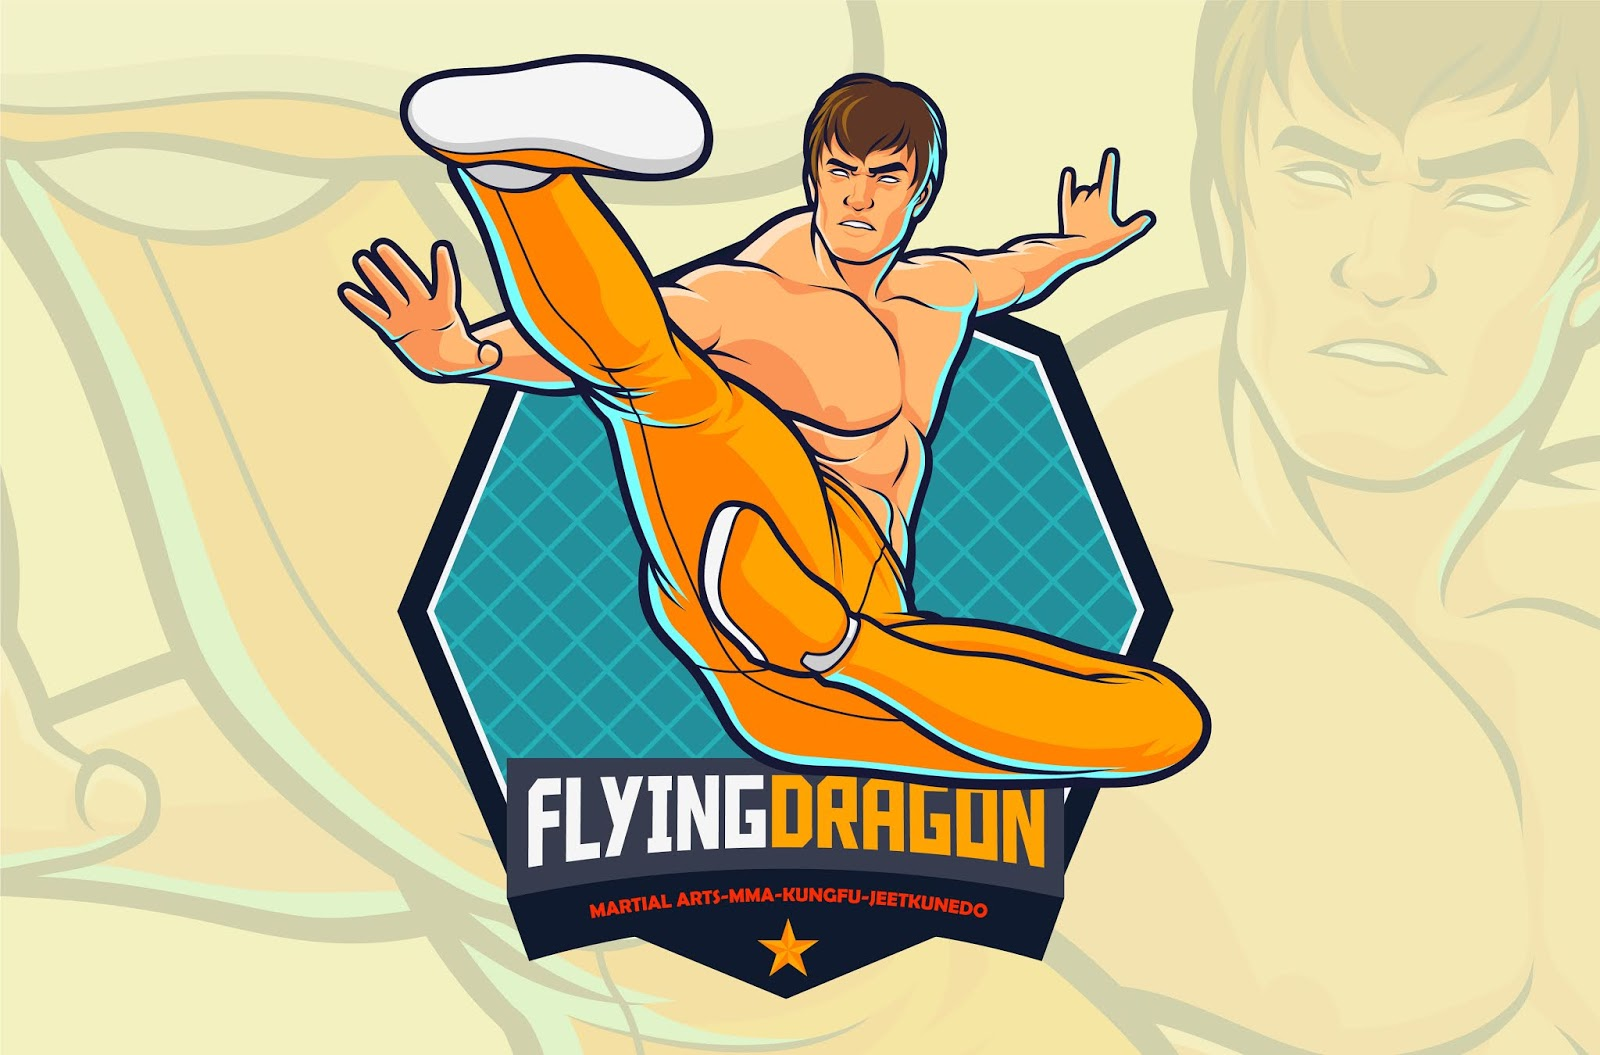 Flying Kick Fighter Action Martial Arts Free Download Vector CDR, AI, EPS and PNG Formats